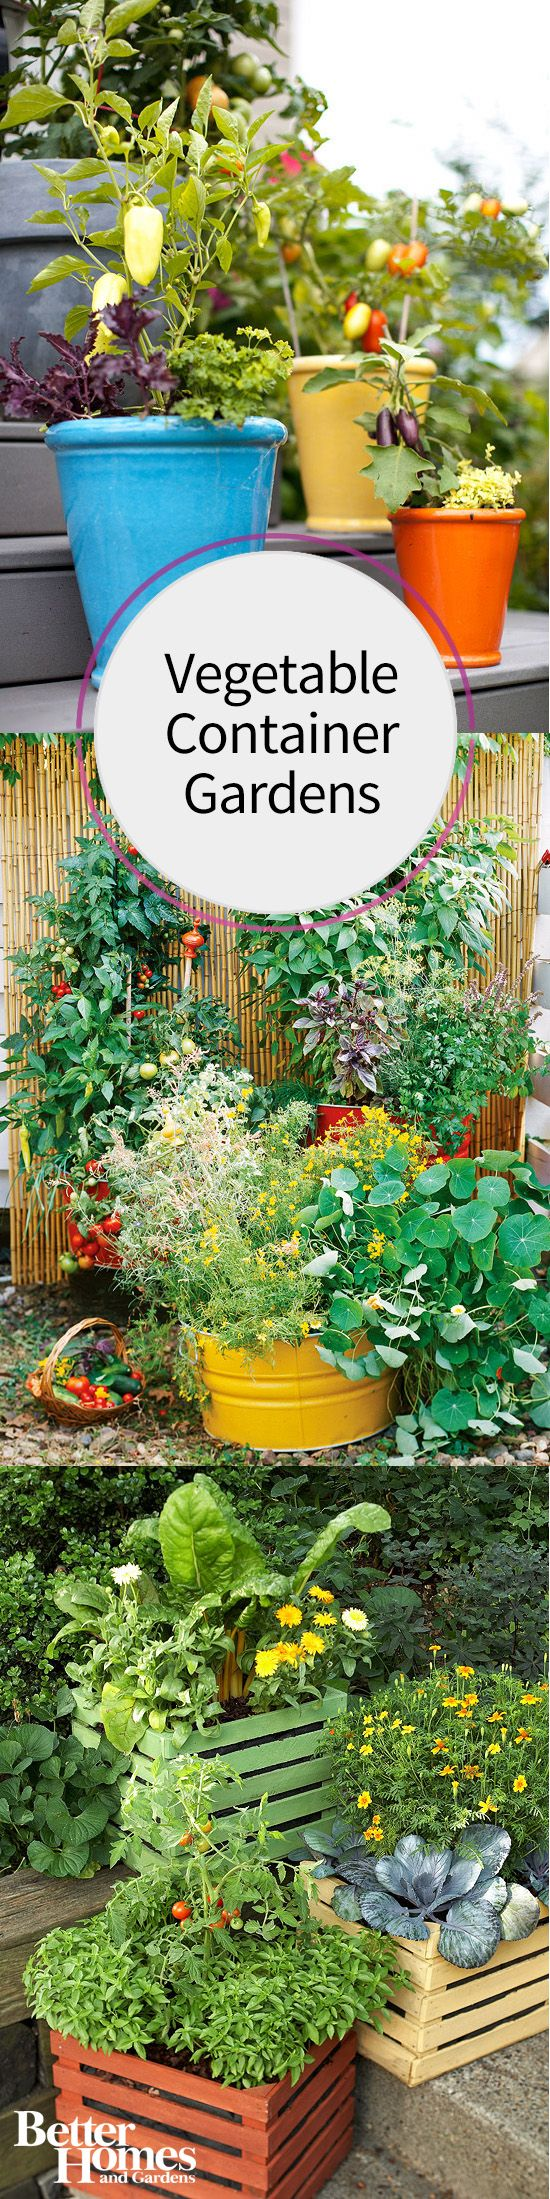 Fresh ideas for growing vegetables in containers gardens for Hanging vegetable garden ideas